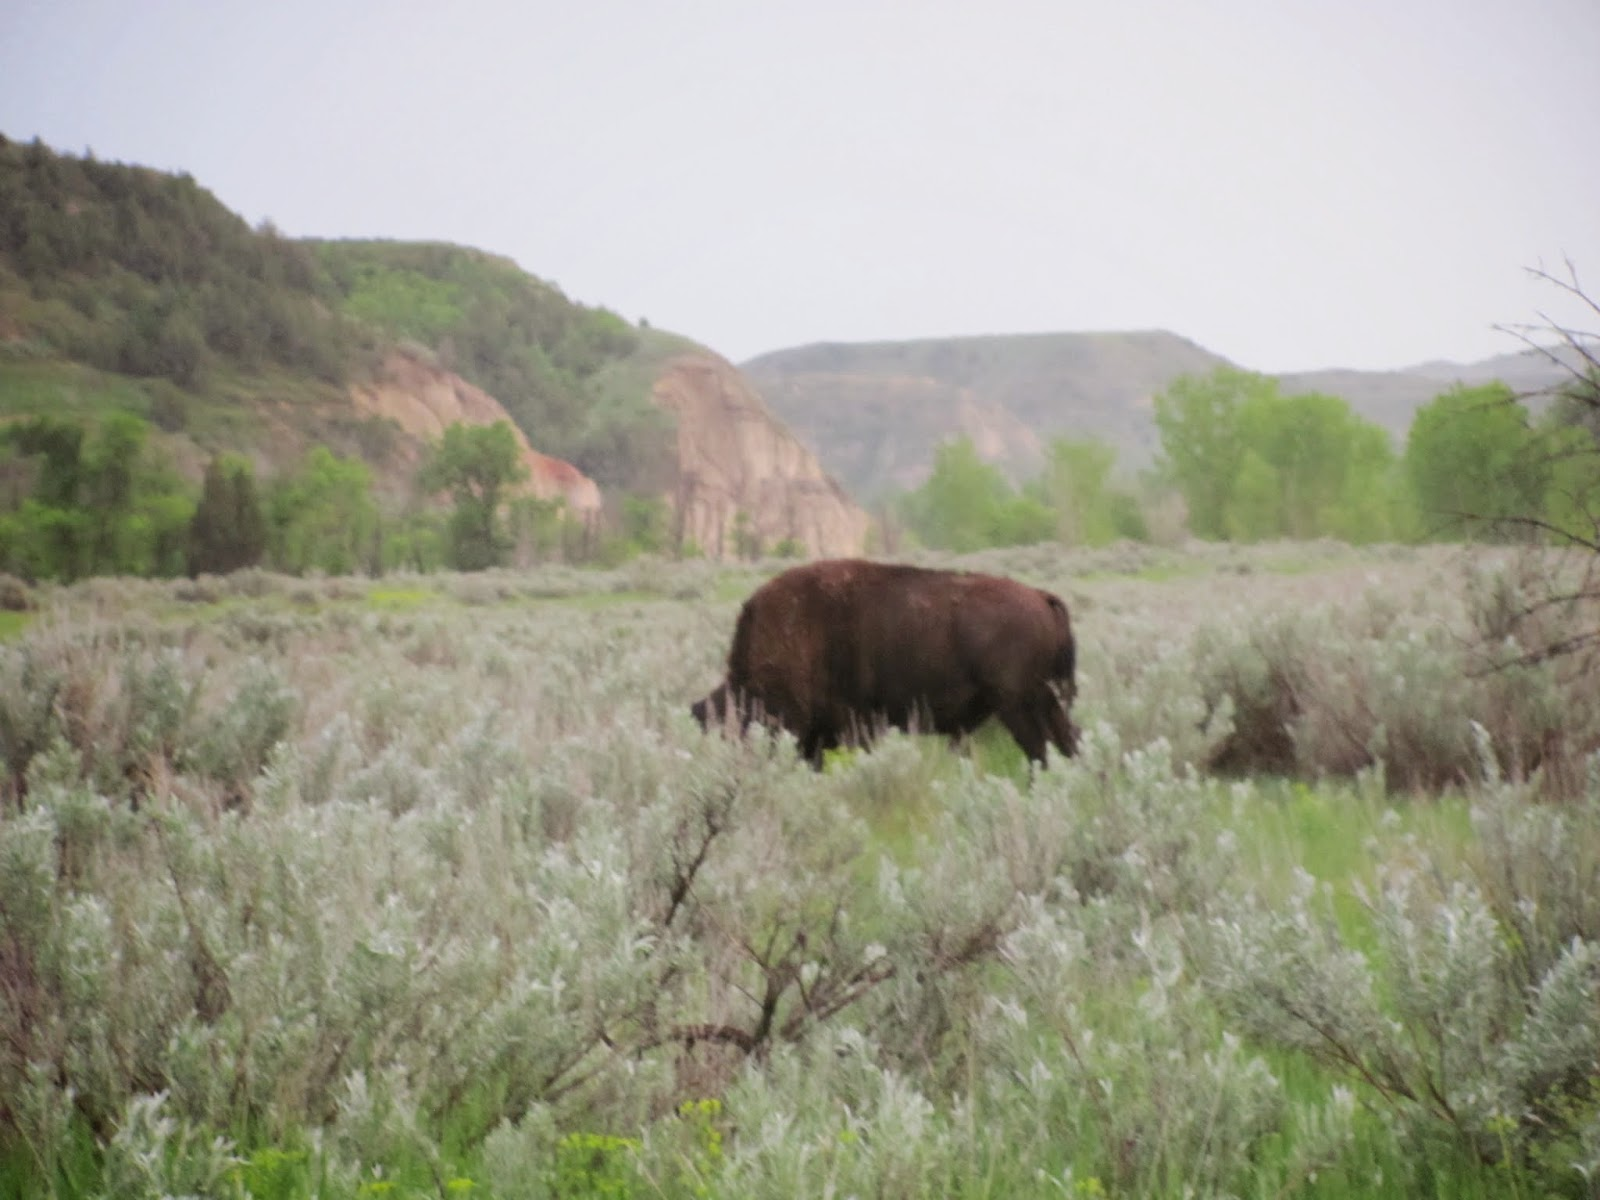 A bison near our camp at Theodore Roosevelt National Park, North Dakota